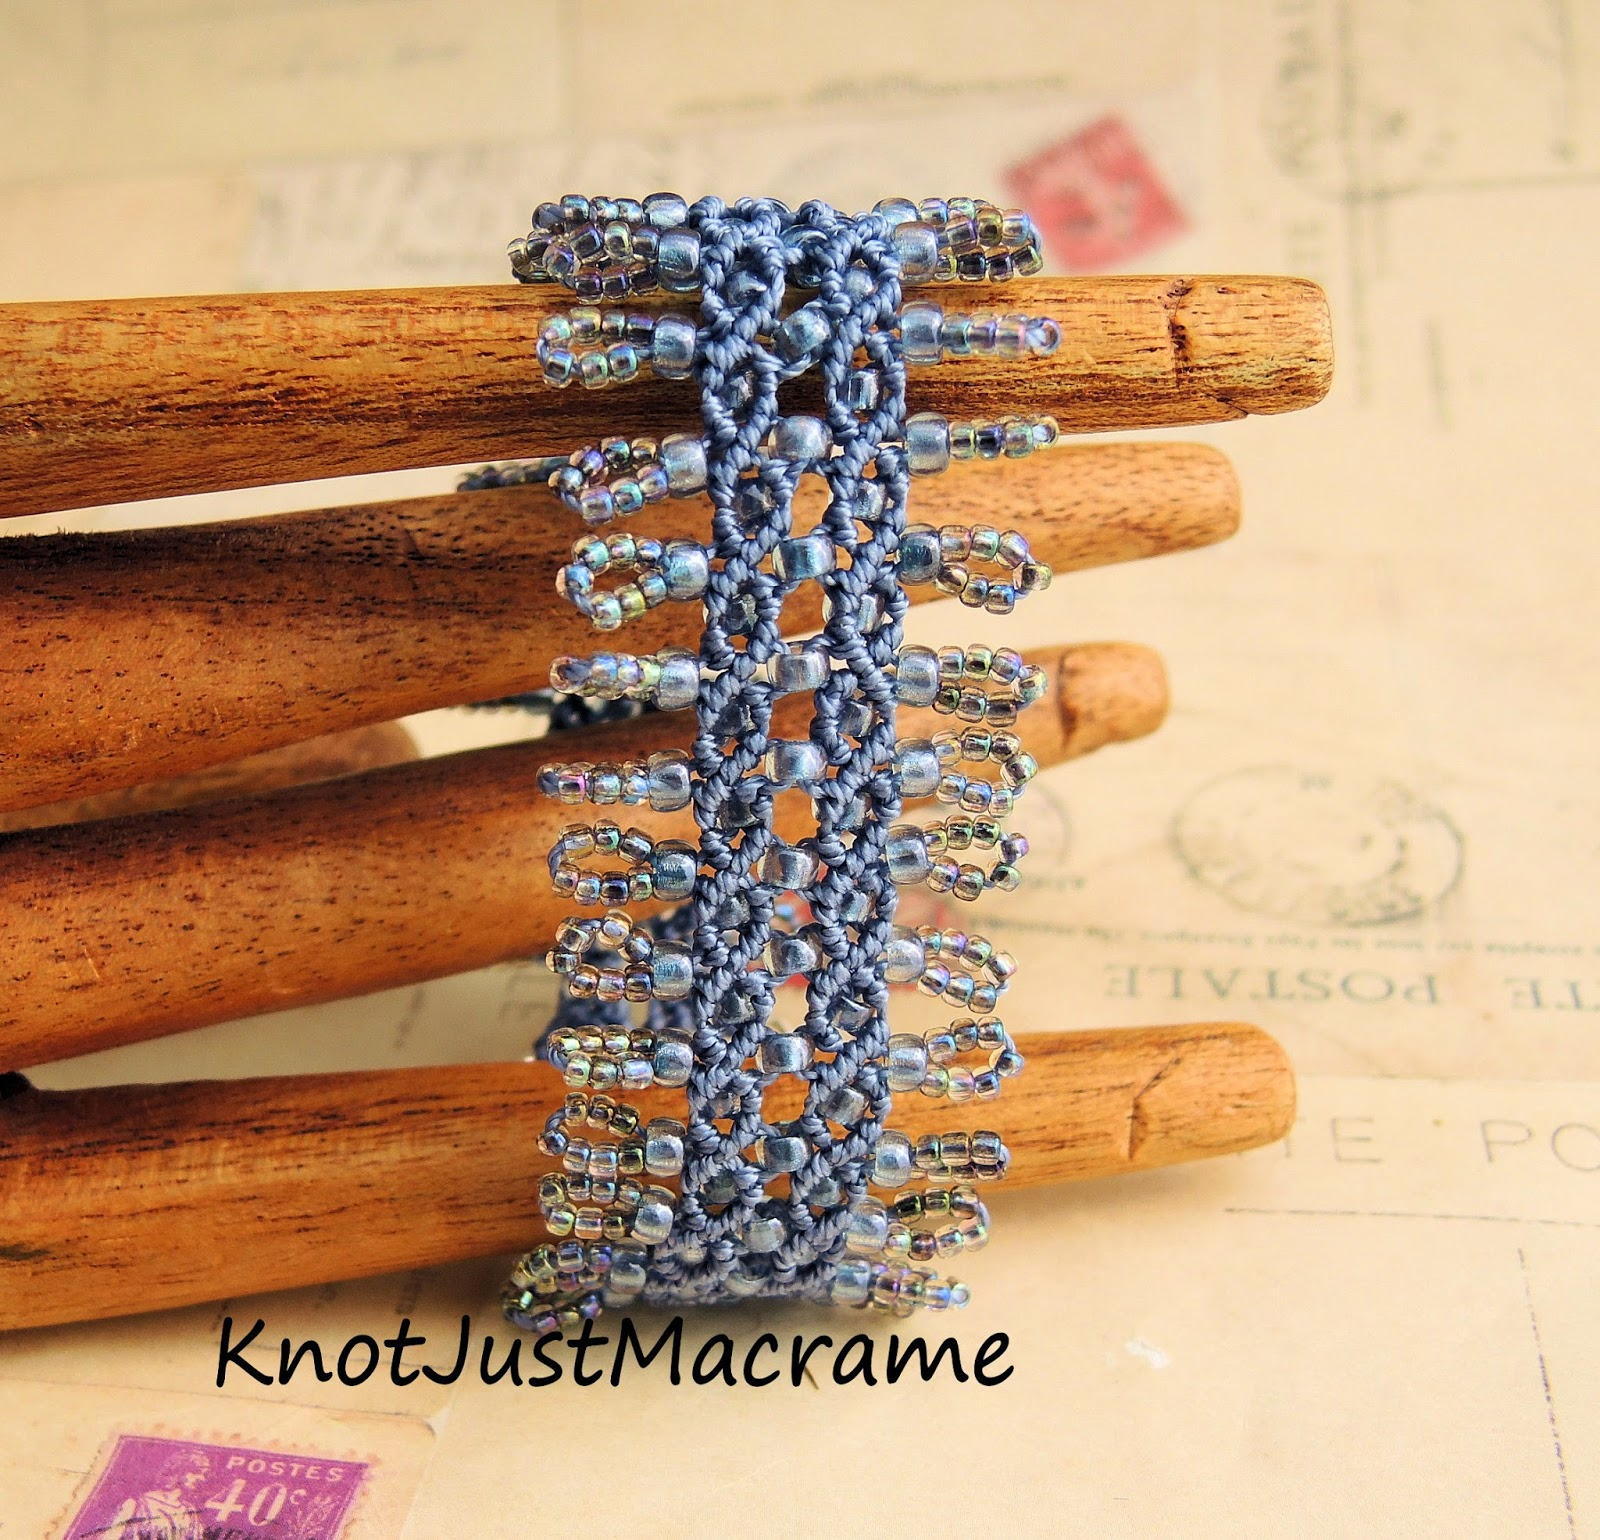 Original micro macrame bracelet designed by Sherri Stokey of Knot Just Macrame